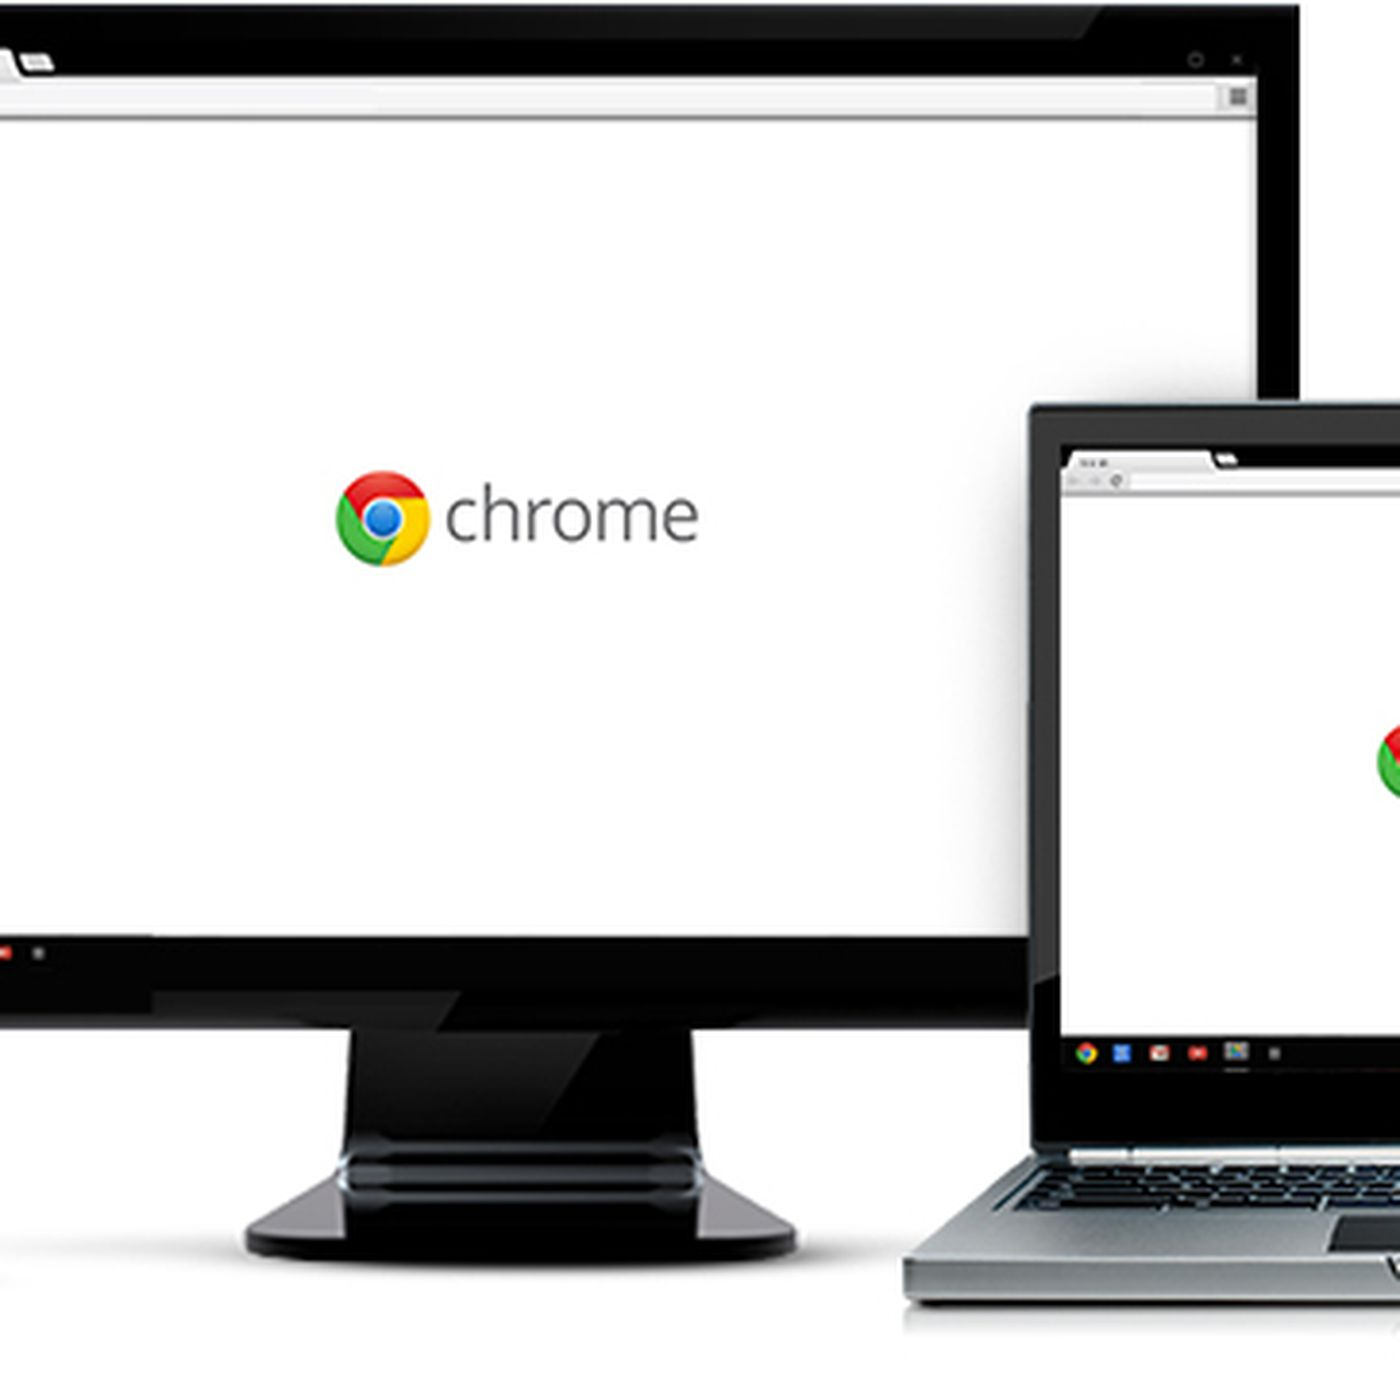 You can now download Google Chrome beta and start muting autoplay